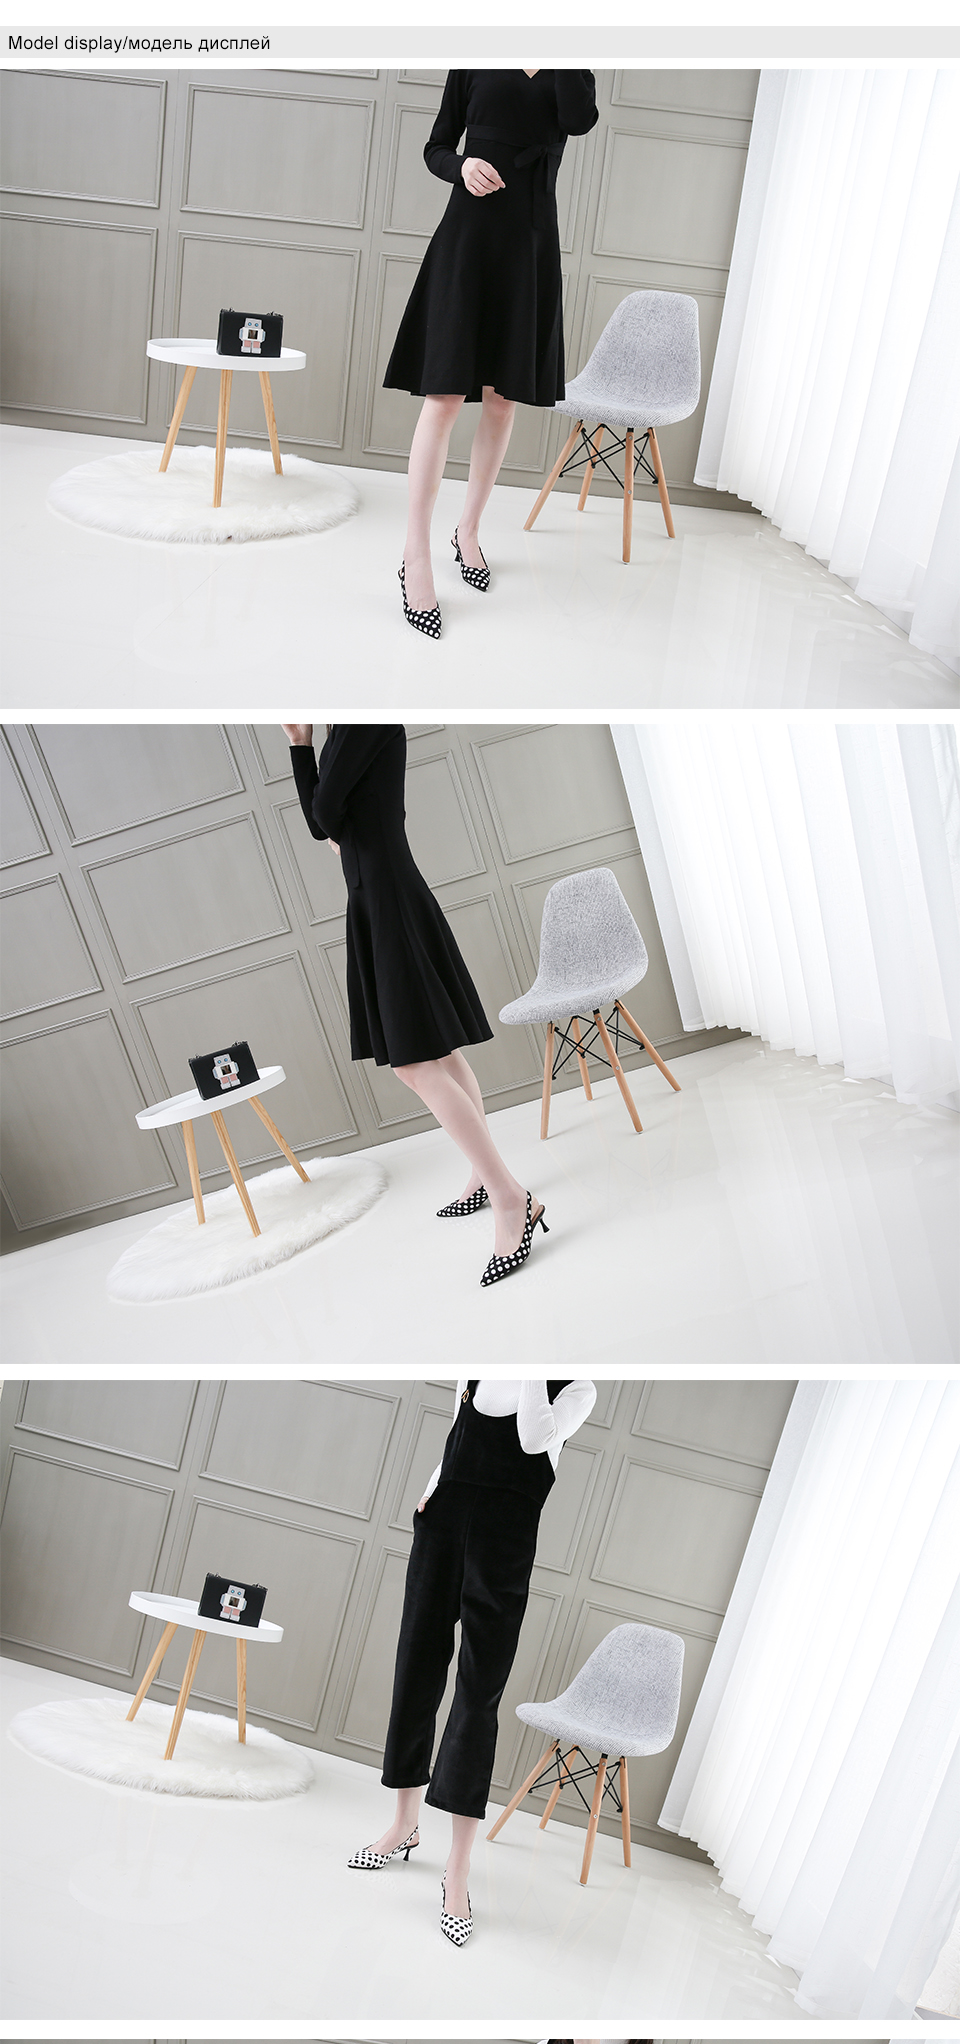 Brand Women Pumps High Heels Shoes Leather Spring Wave Point Single Women Dress Shoes Thin Heels Pointed Toe Party Pumps Lady 45 2